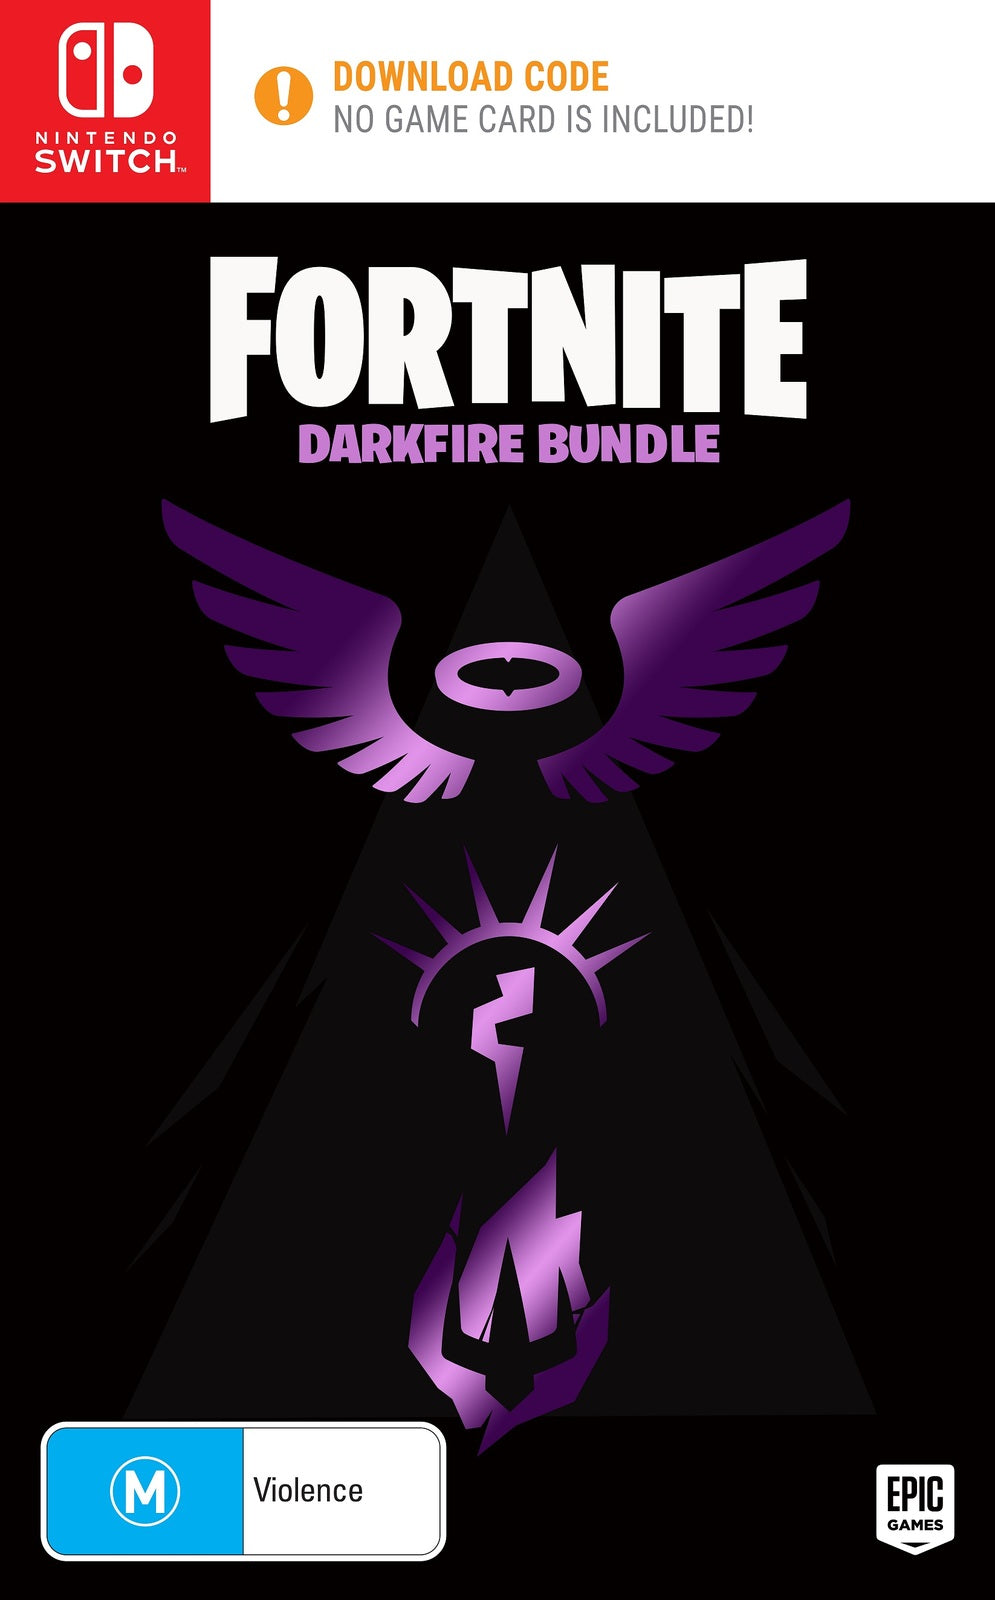 Fortnite: Dark Fire Bundle (code in box) - Nintendo Switch